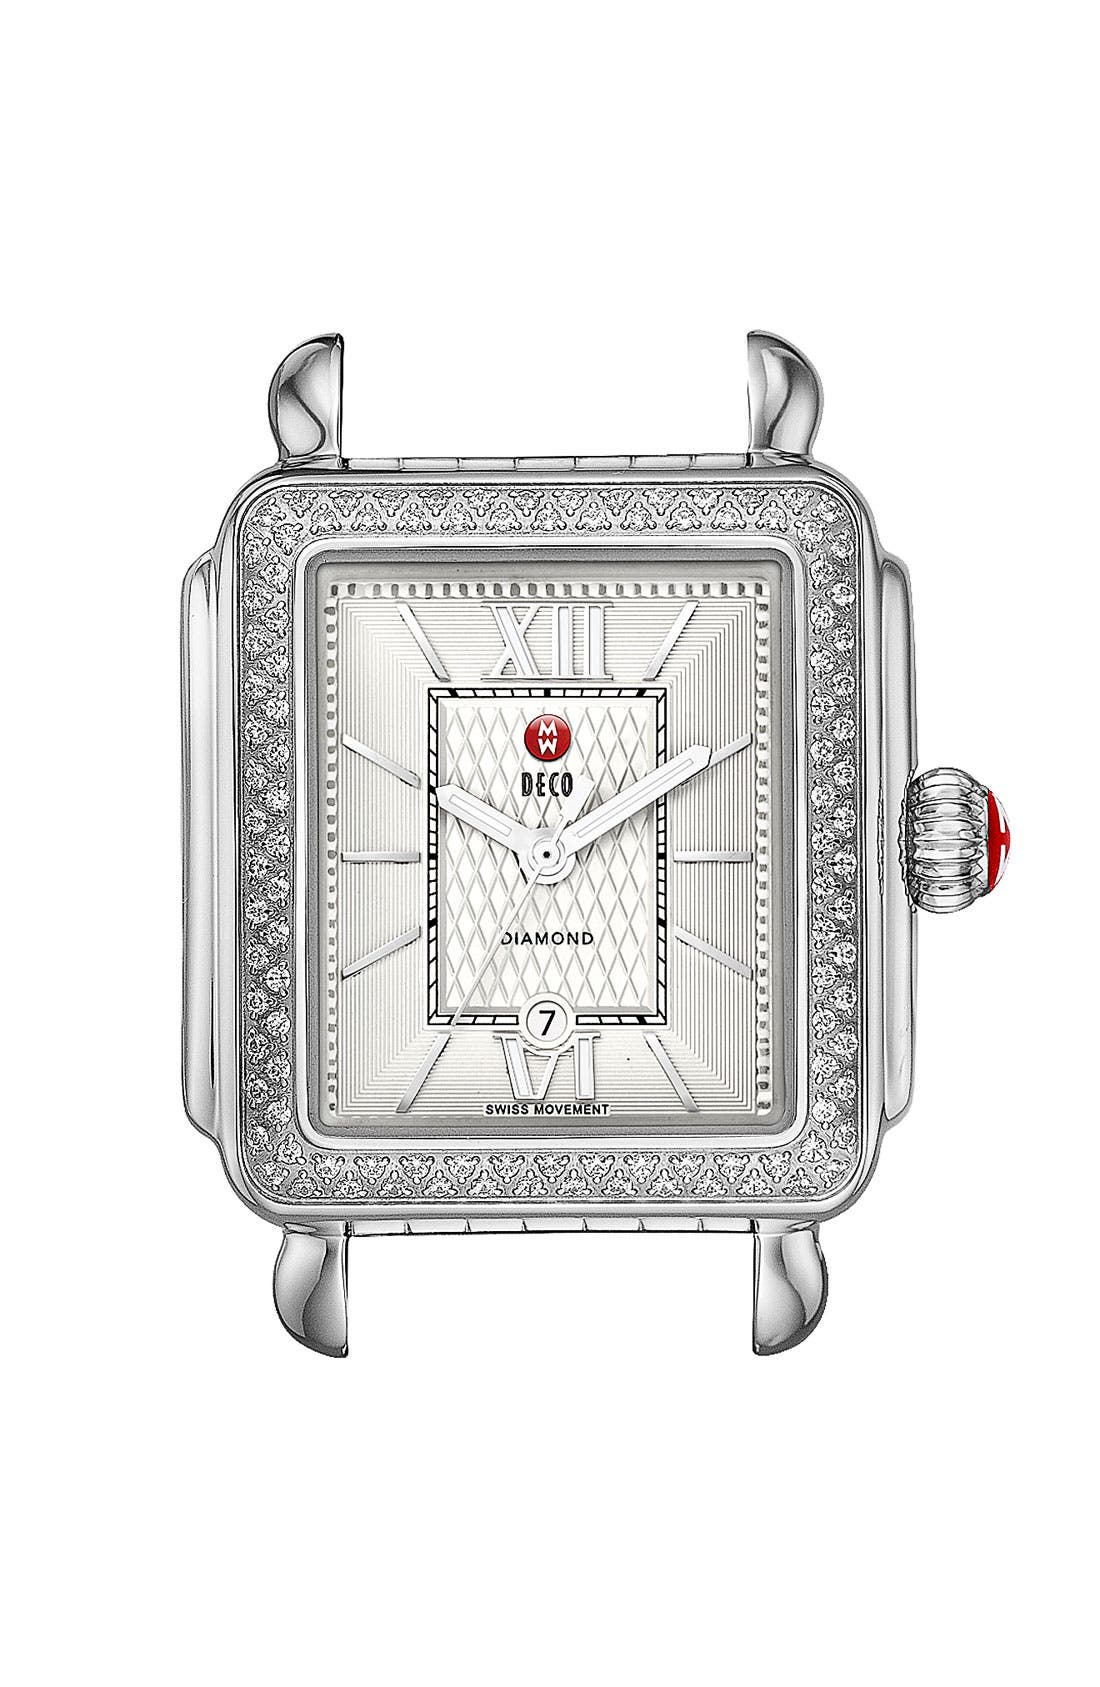 Alternate Image 1 Selected - MICHELE 'Deco Diamond' Guilloche Dial Watch Case, 33mm x 35mm